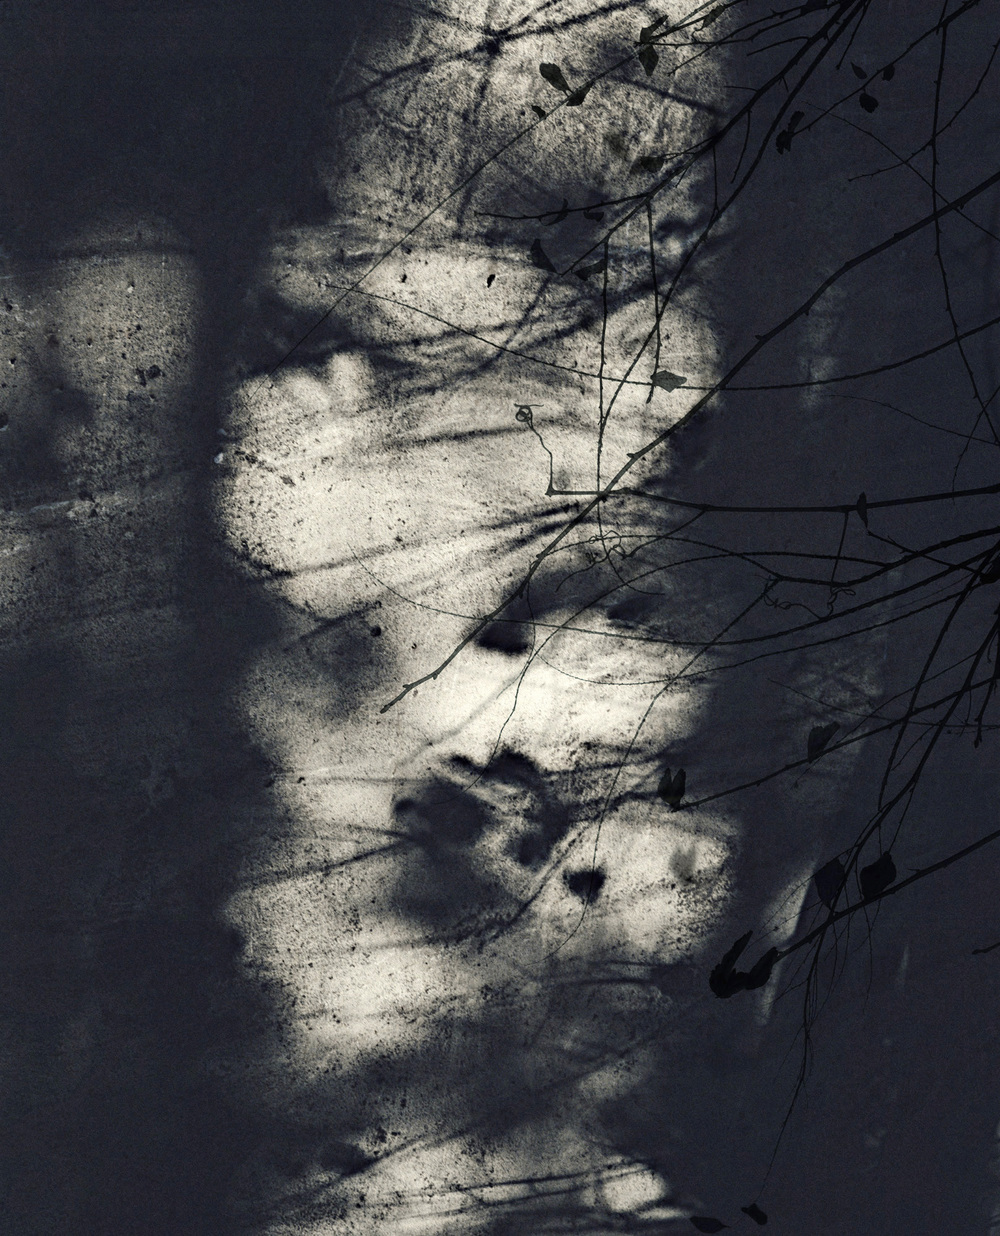 Jocelyne Allucherie Trois de Nuit 6, 2014 Shadows:  Three of Day and Three of Night Series injet photograph on canvas